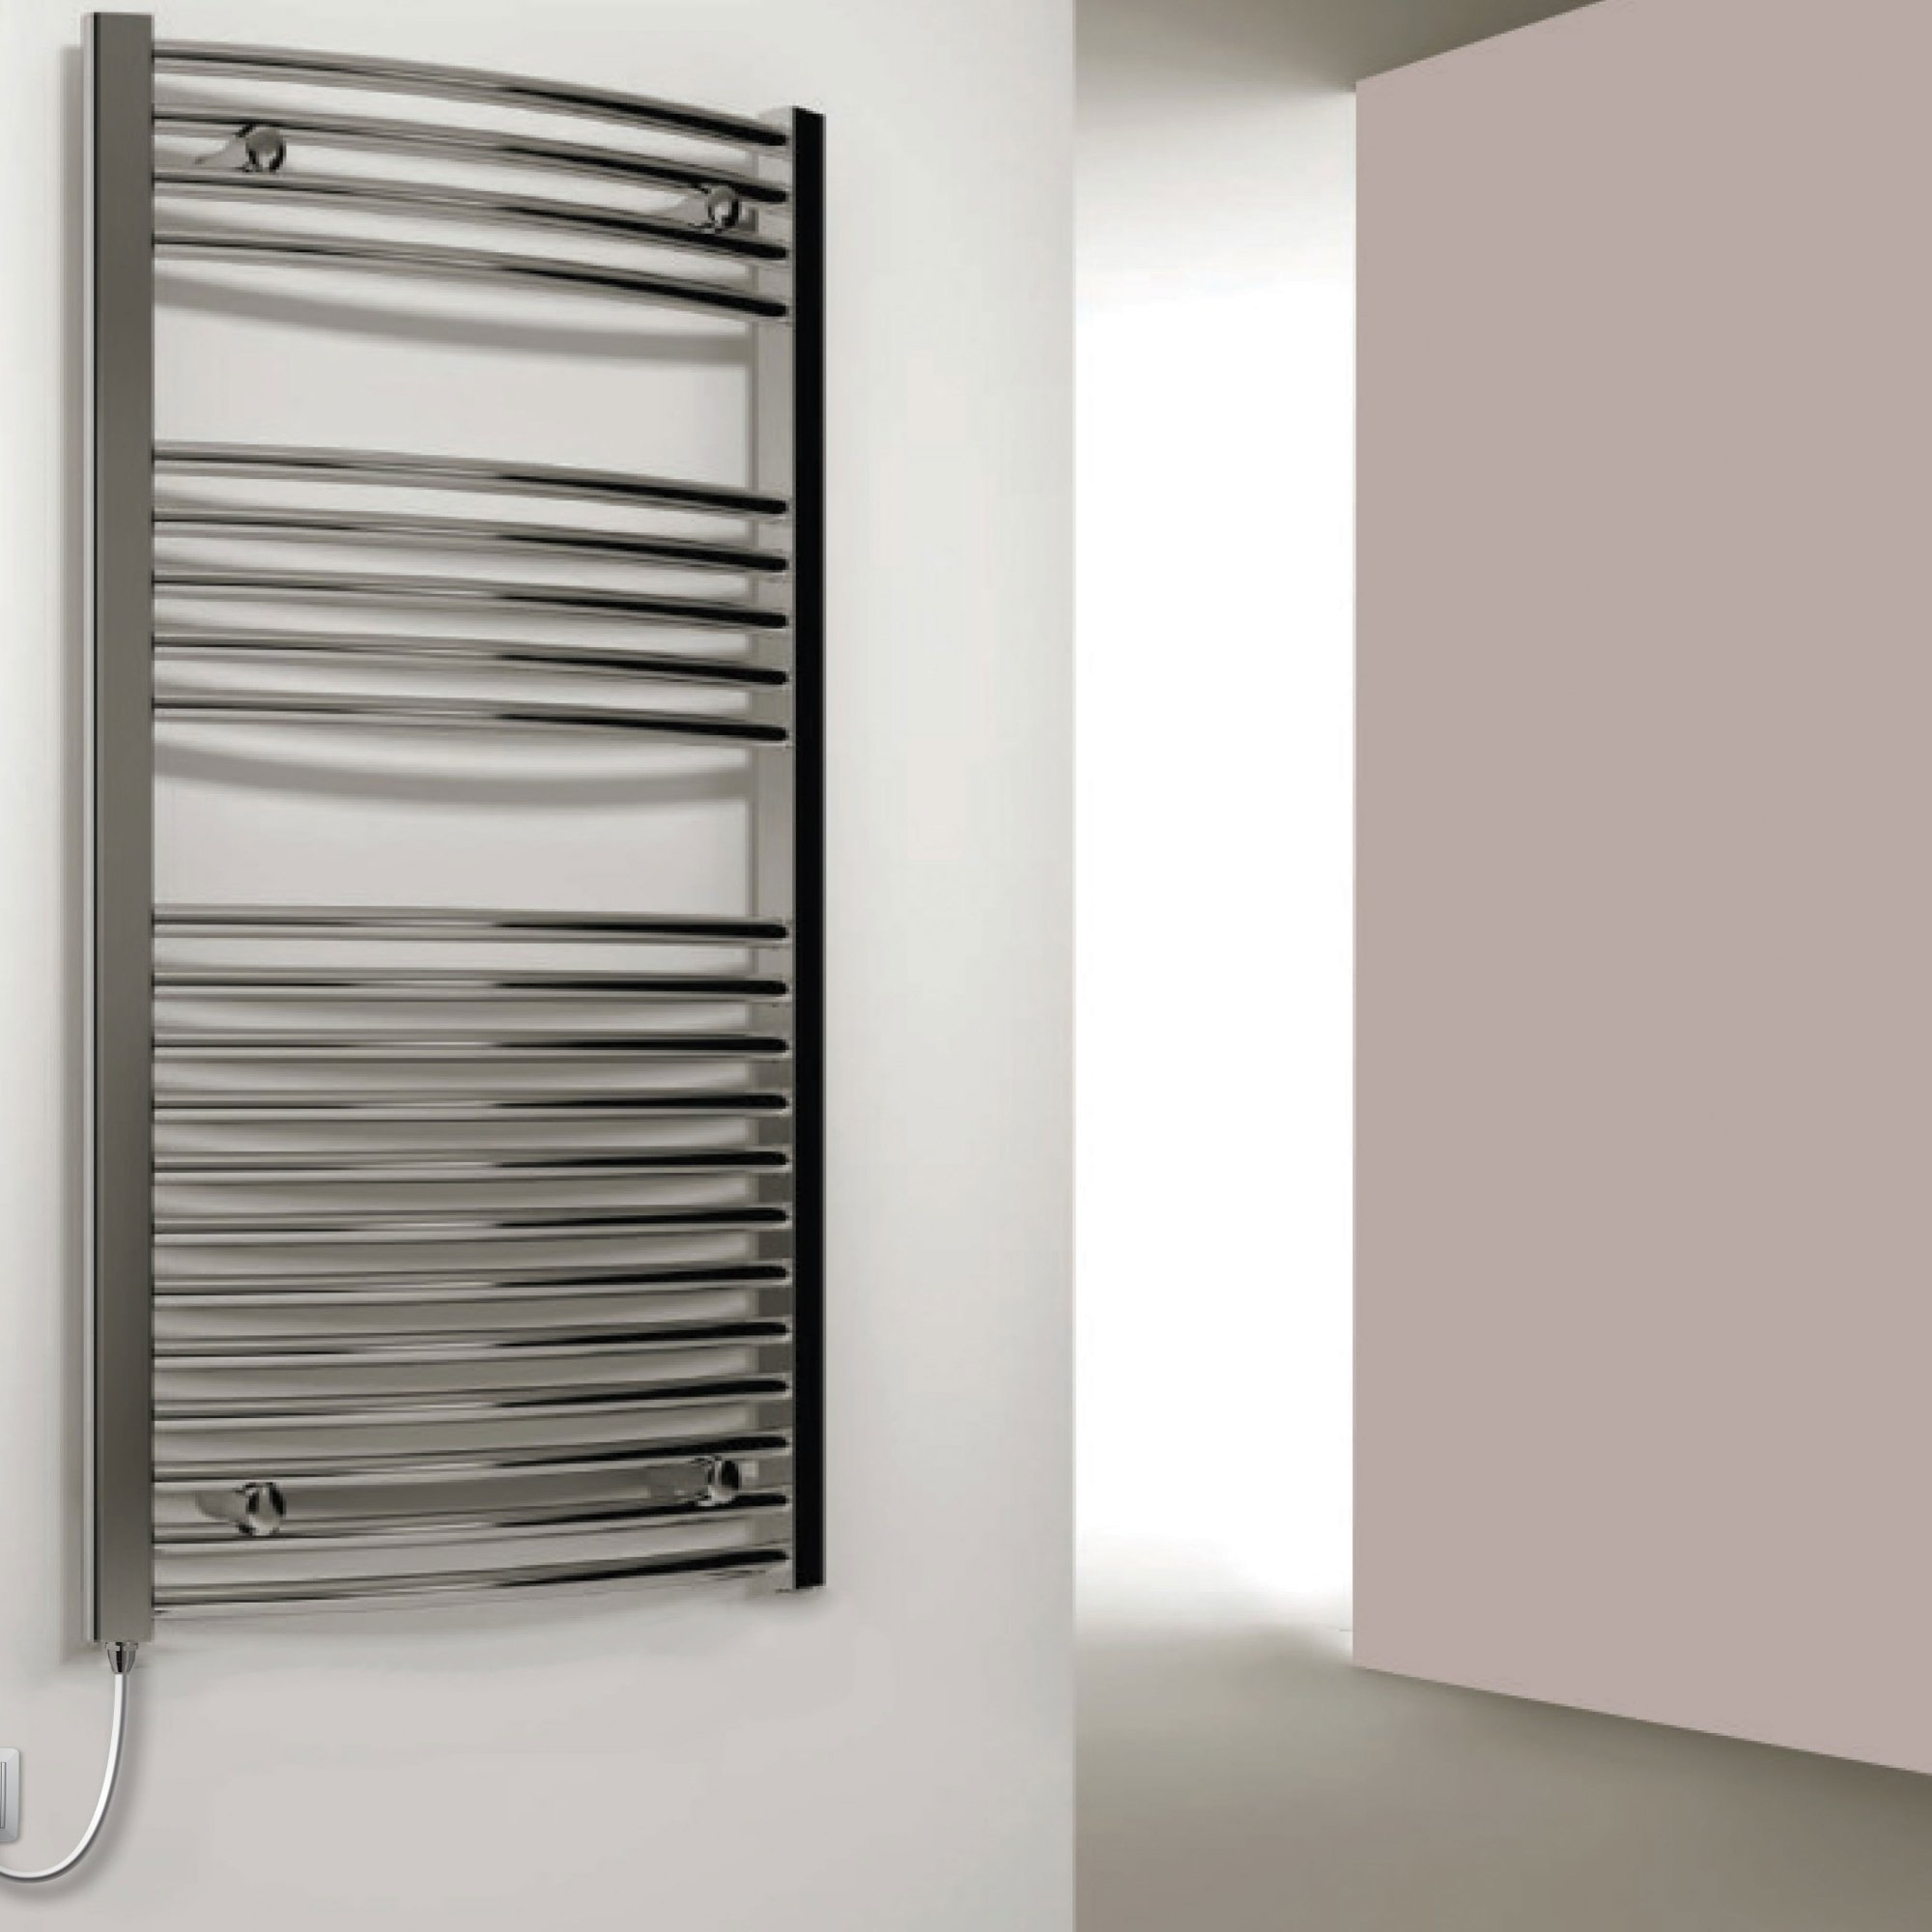 Reina Capo Curved Thermostatic Electric Heated Towel Rail 800mm H x 600mm W Chrome